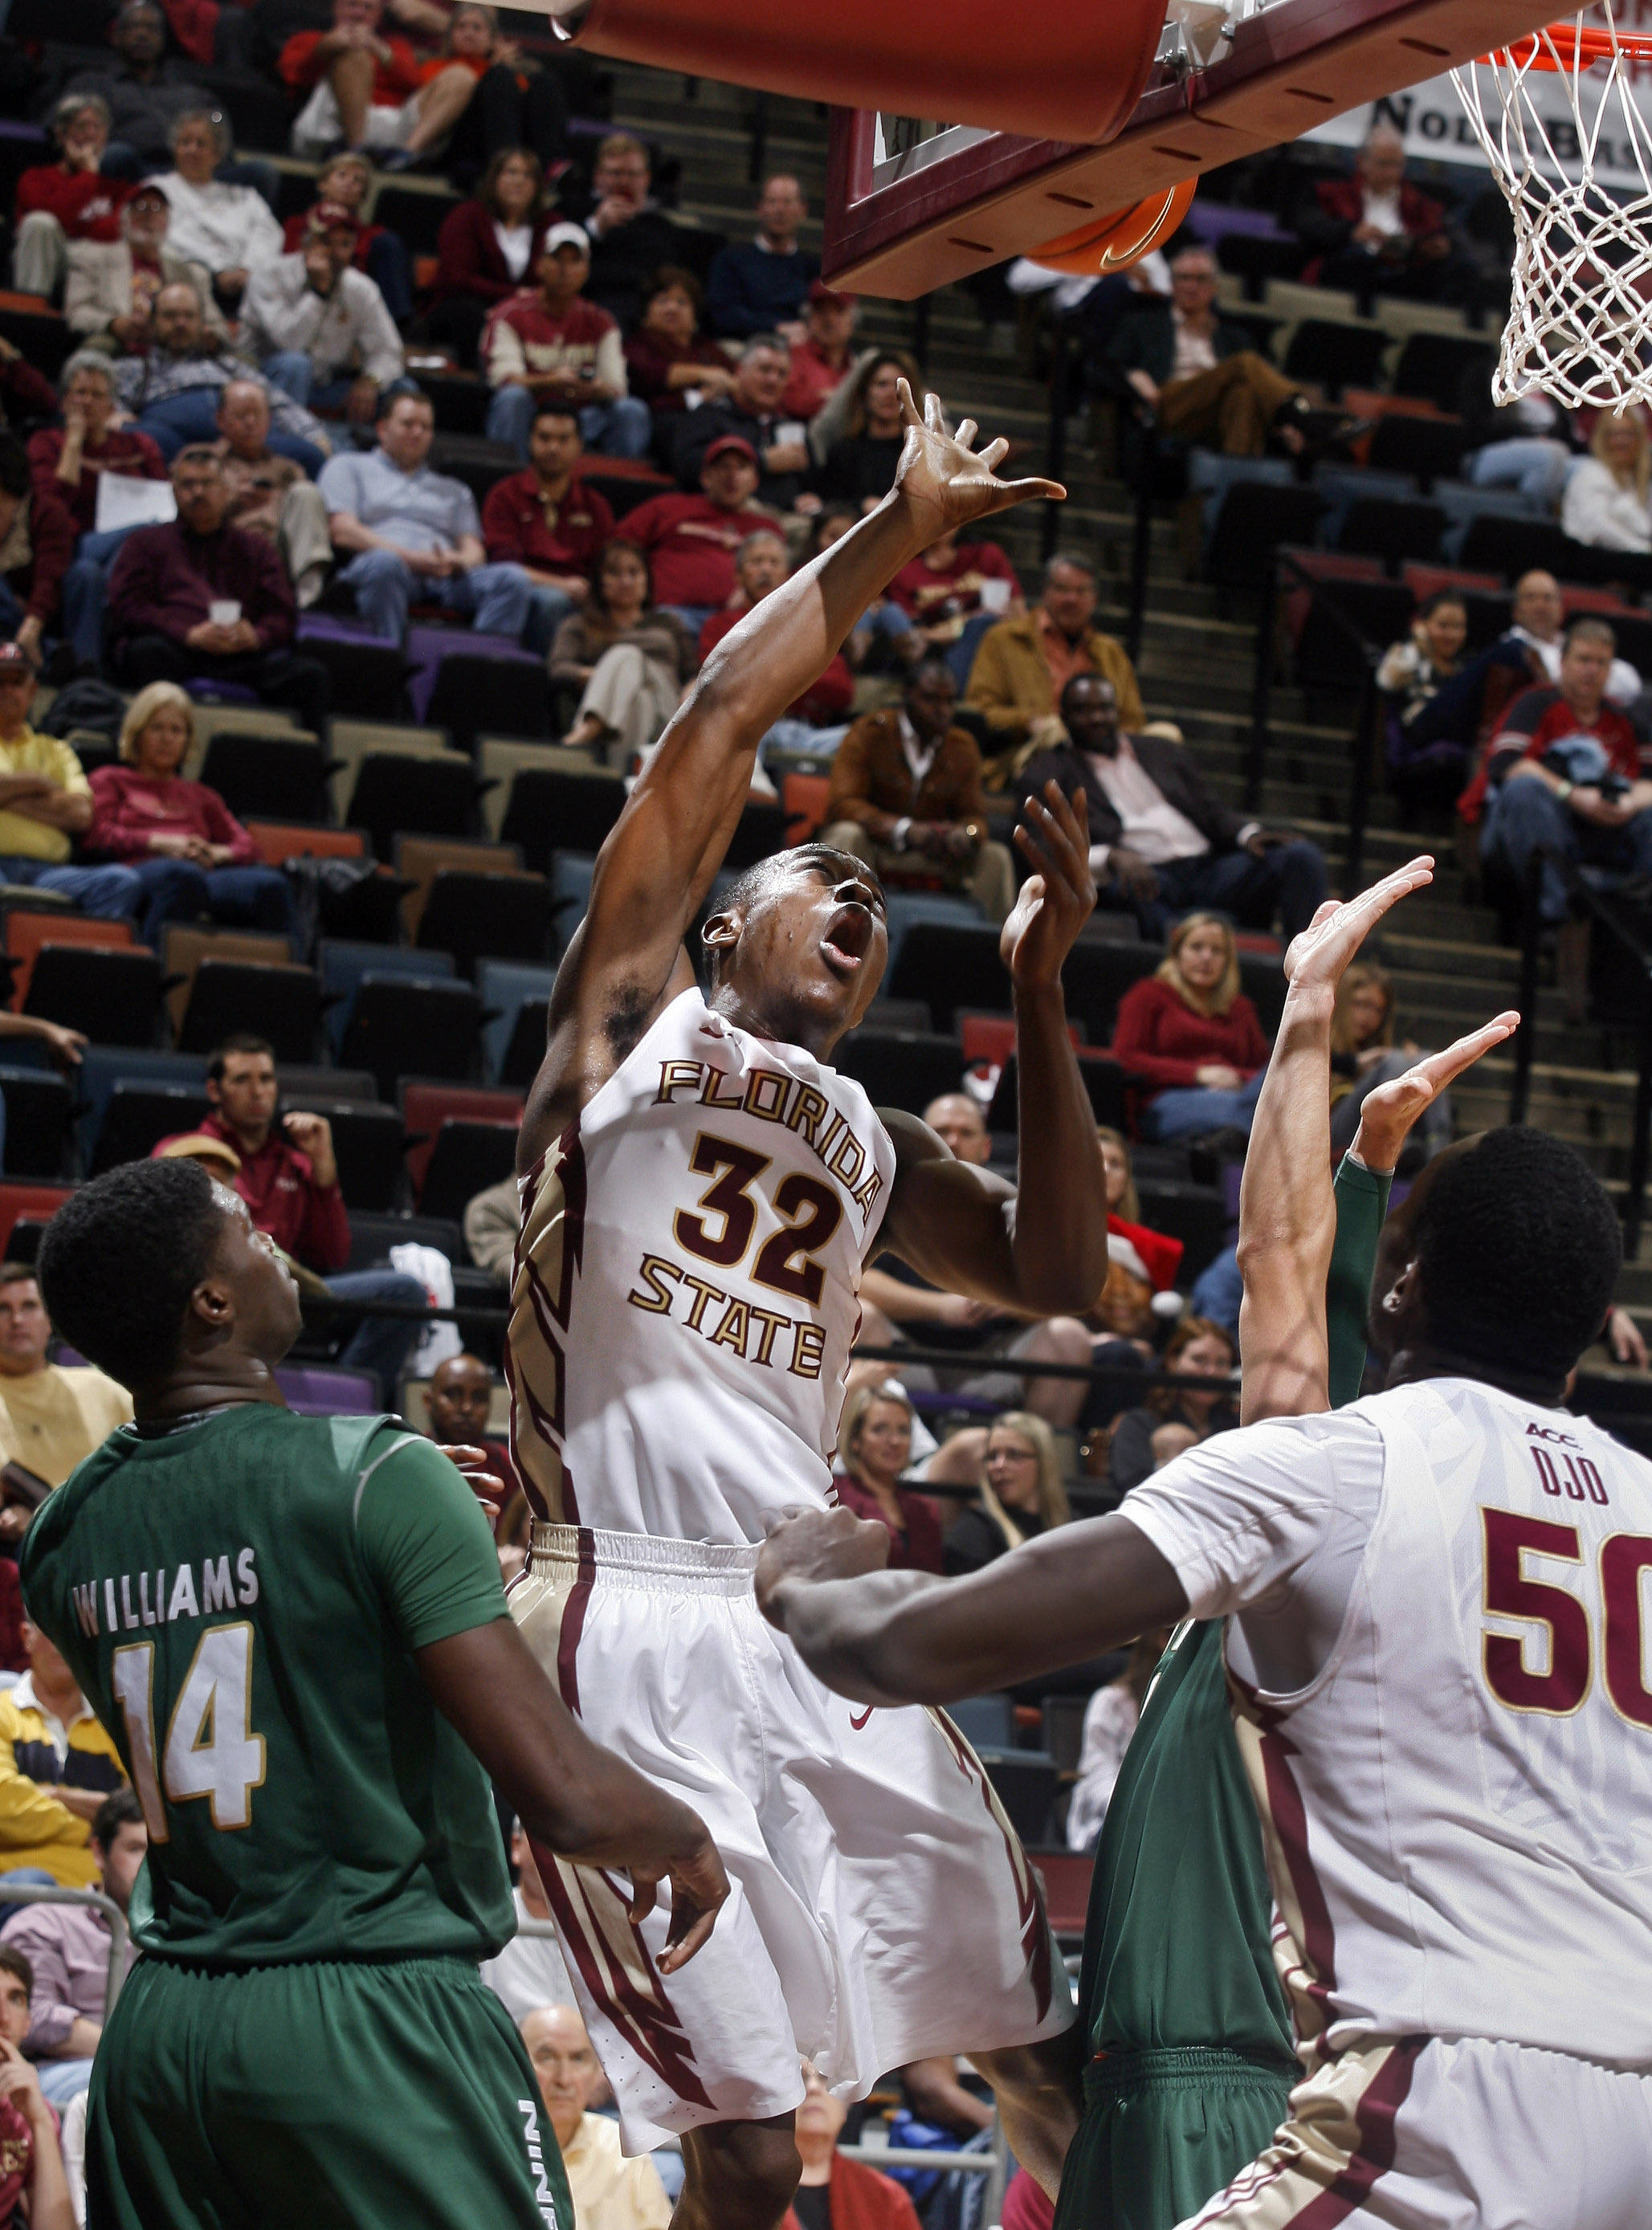 Dec 17, 2013; Tallahassee, FL, USA; Florida State Seminoles guard Montay Brandon (32) makes a basket as he is fouled by Charlotte 49ers guard Terrence Williams (14) in the second half of their game at the Donald L. Tucker Center. The Florida State Seminoles beat the Charlotte 49ers 106-62. Mandatory Credit: Phil Sears-USA TODAY Sports